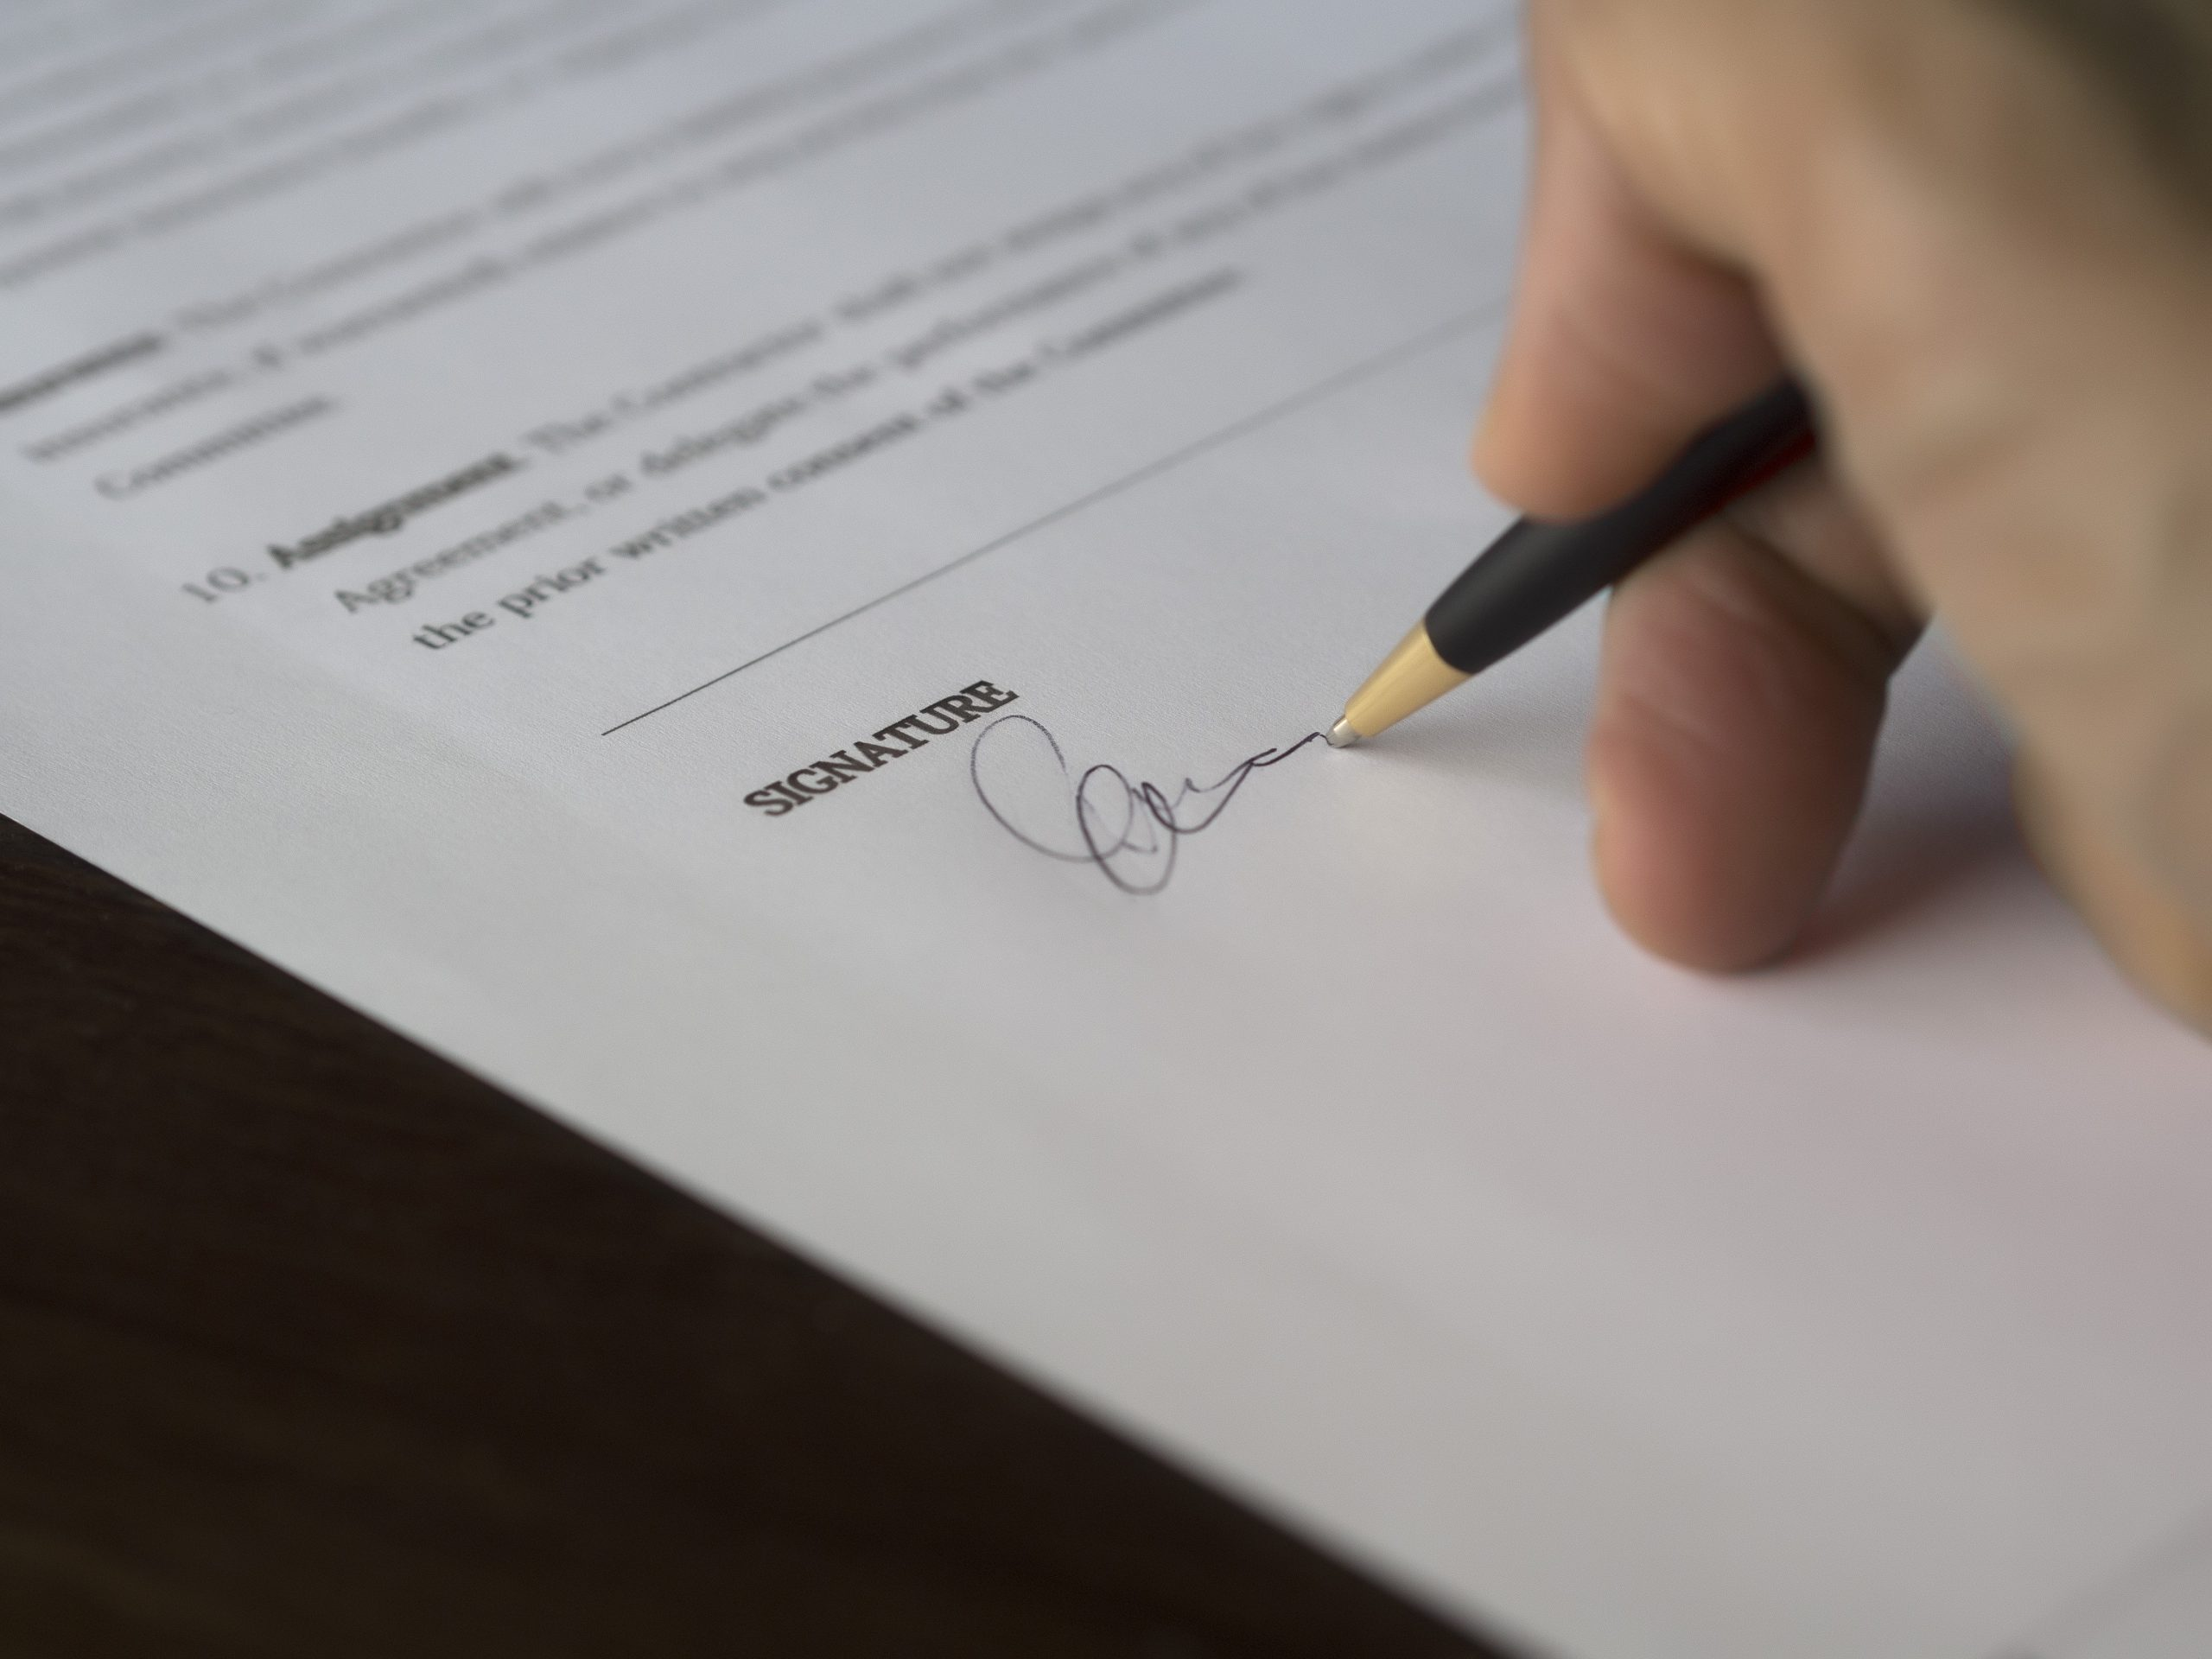 When incapacity results in the lapsing of a power of attorney